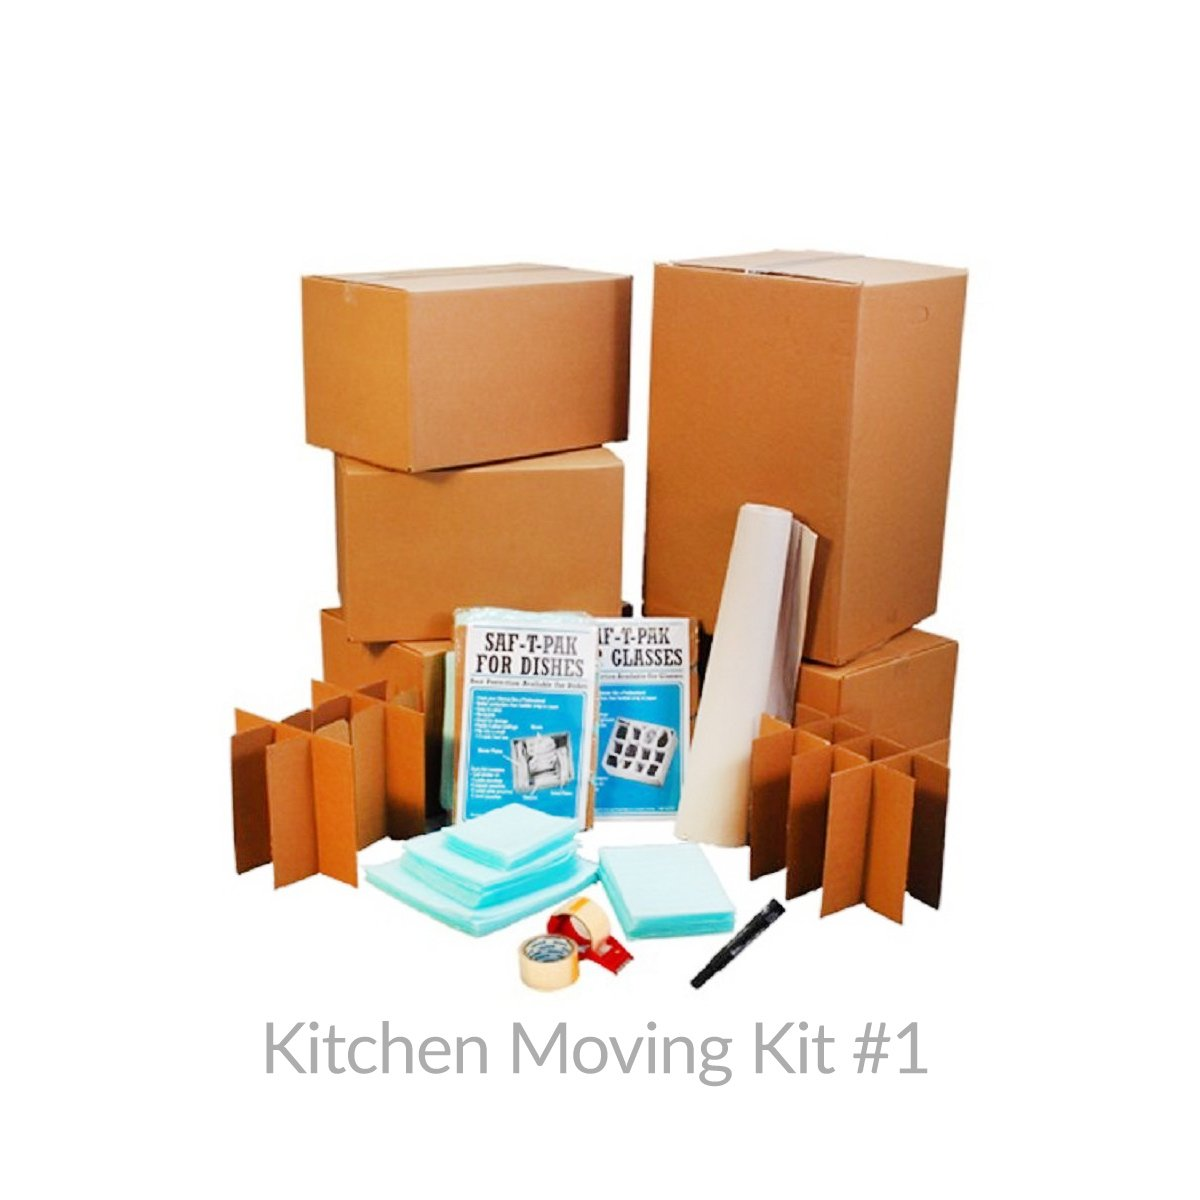 amazon com uboxes kitchen moving box supplies kit 1 4 boxes amazon com uboxes kitchen moving box supplies kit 1 4 boxes dish glass inserts box mailers office products